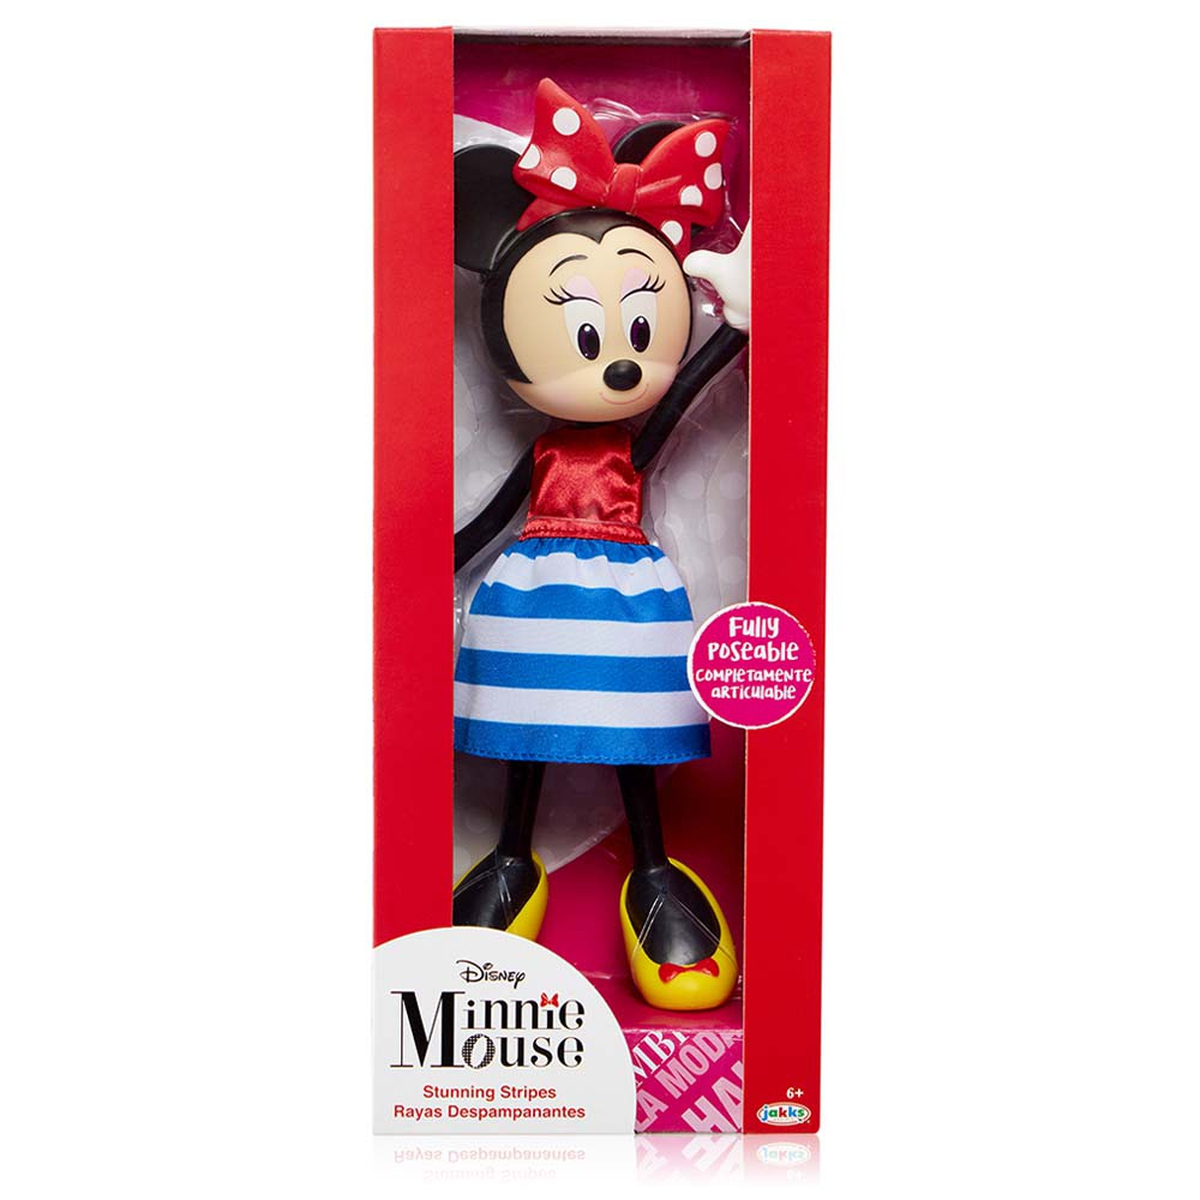 Disney Minnie Mouse Poseable Doll - Stunning Stripes